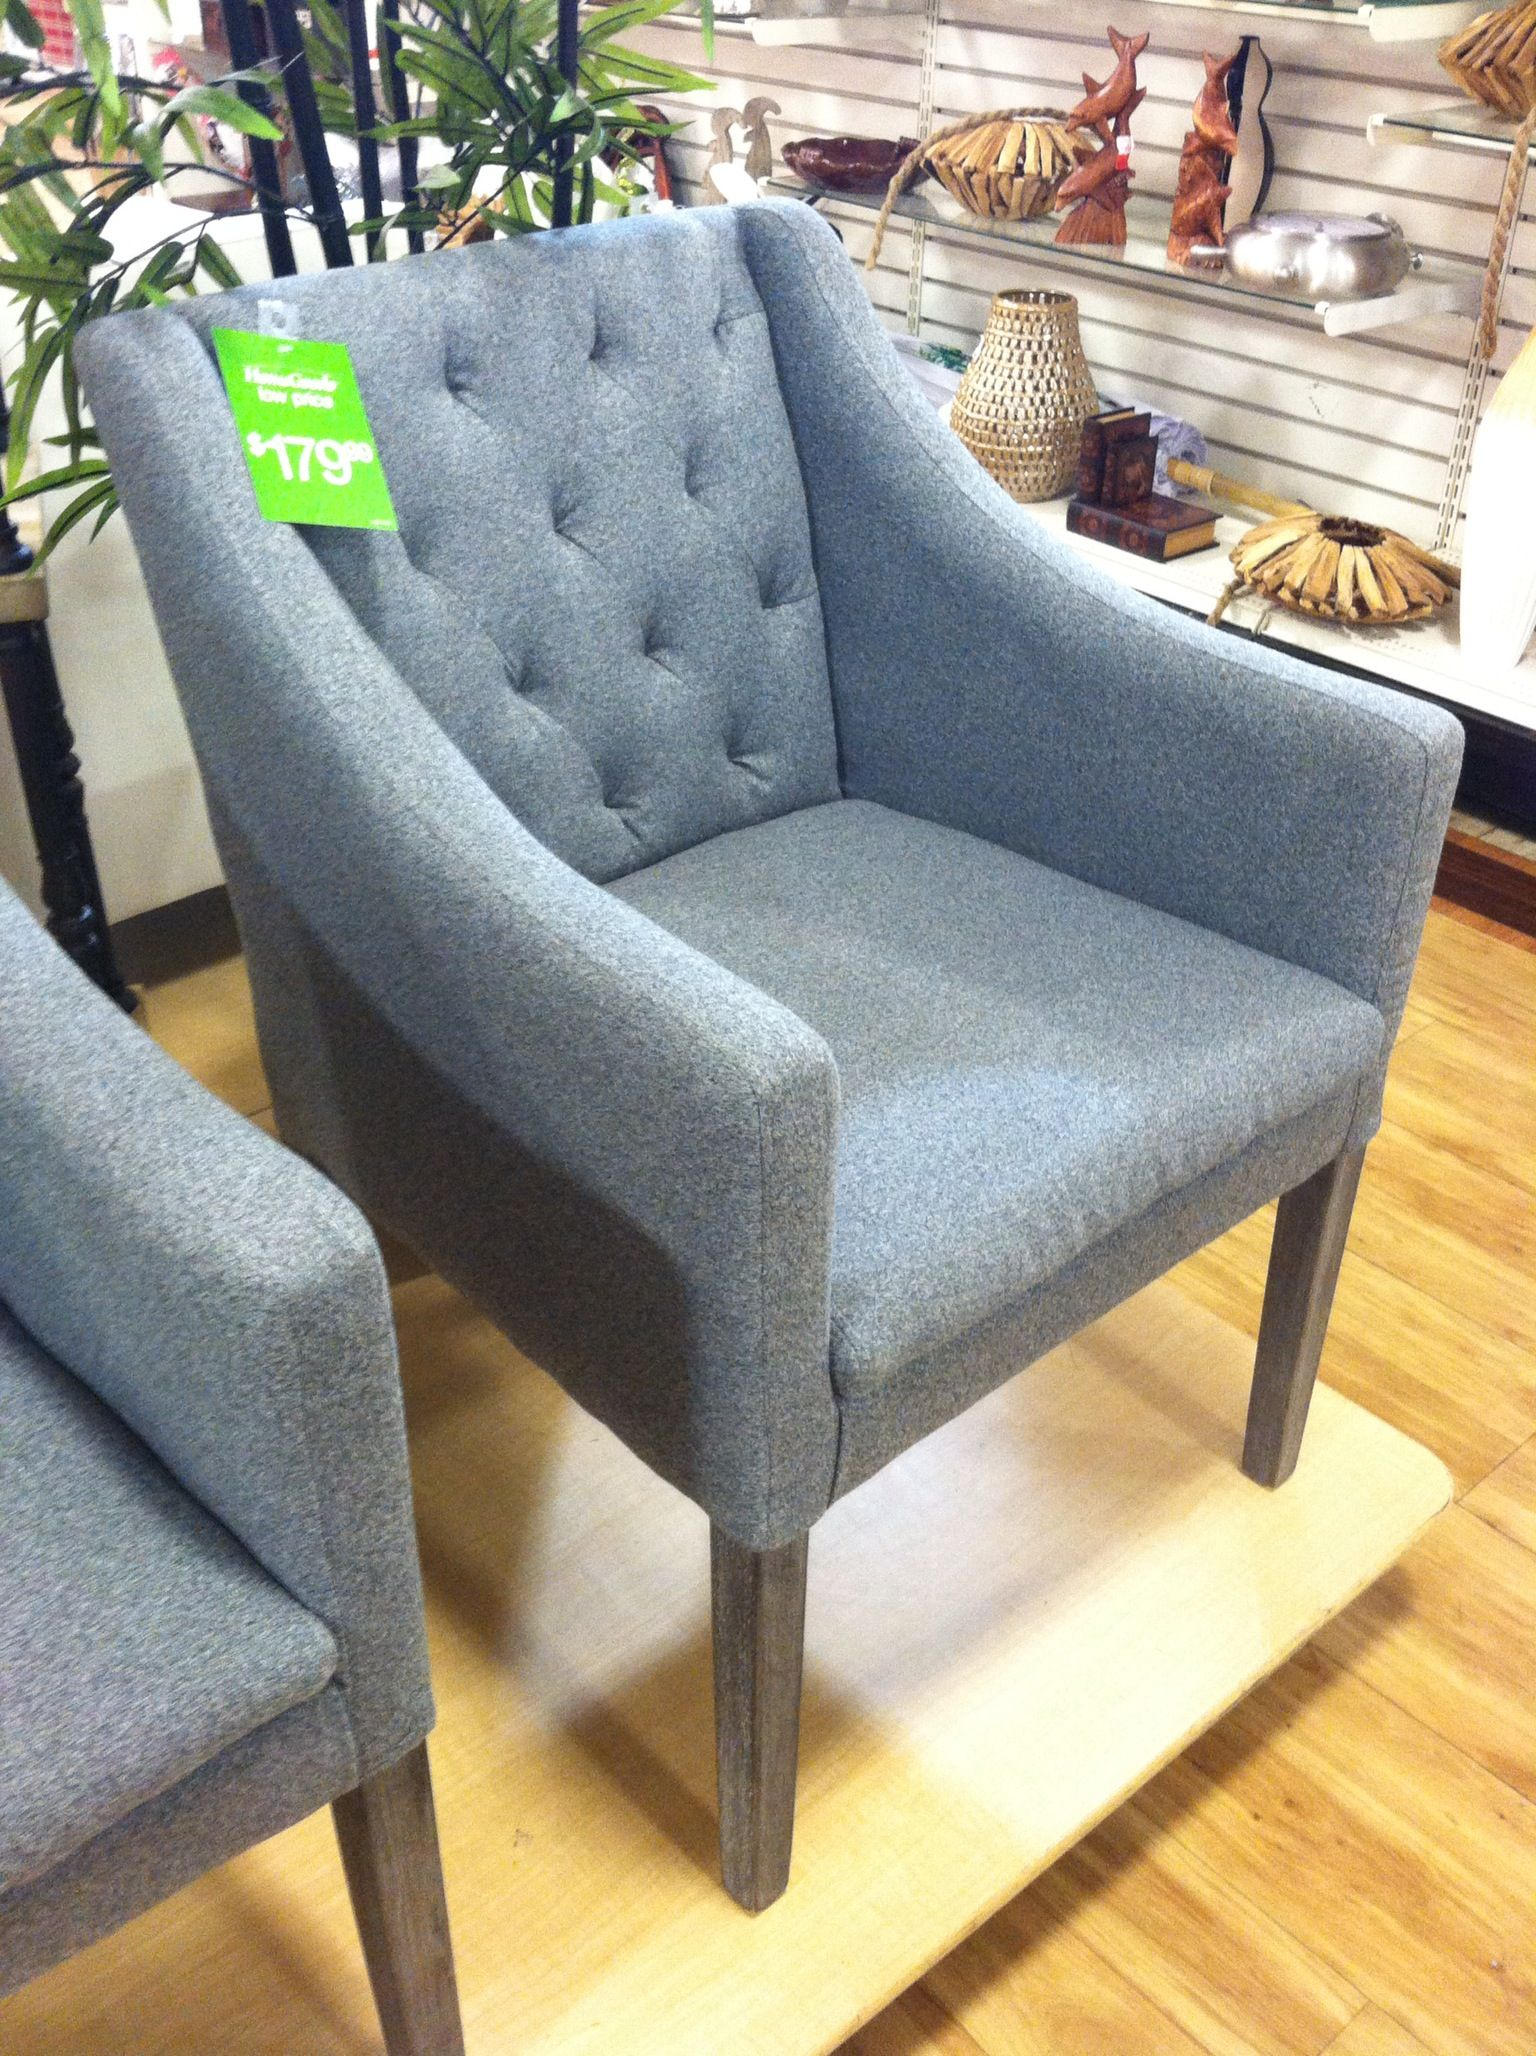 Home Goods Kitchen Chairs : goods, kitchen, chairs, Dining, Chairs, Upholstered, Gray., HomeGoods., Chairs,